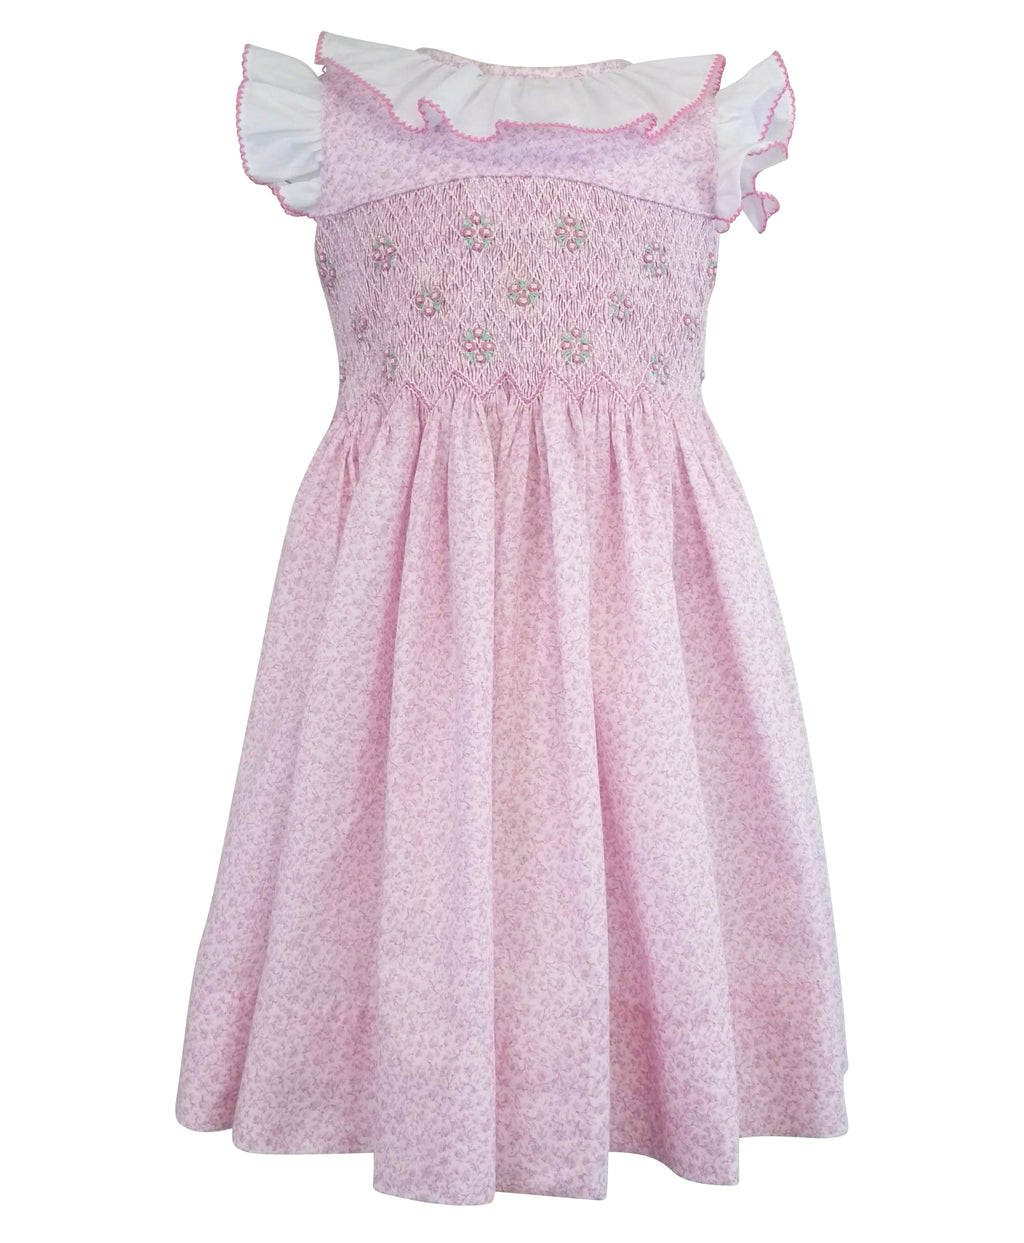 Pink Rosebud Ruffled Smocked Girl Dress - Little Threads Inc. Children's Clothing